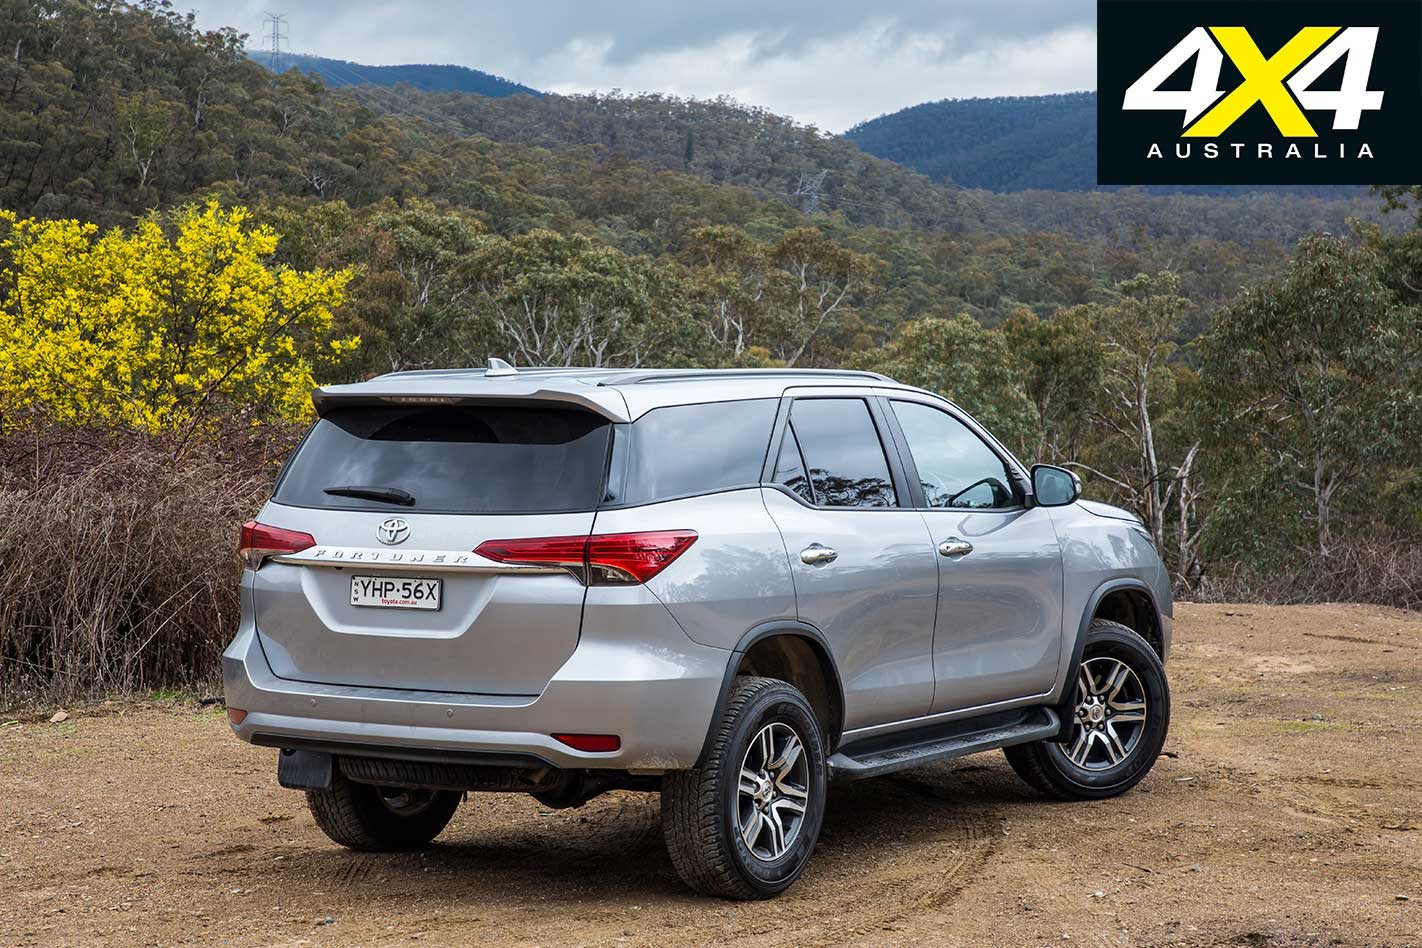 2018 Toyota Prado vs Toyota Fortuner 4x4 comparison review